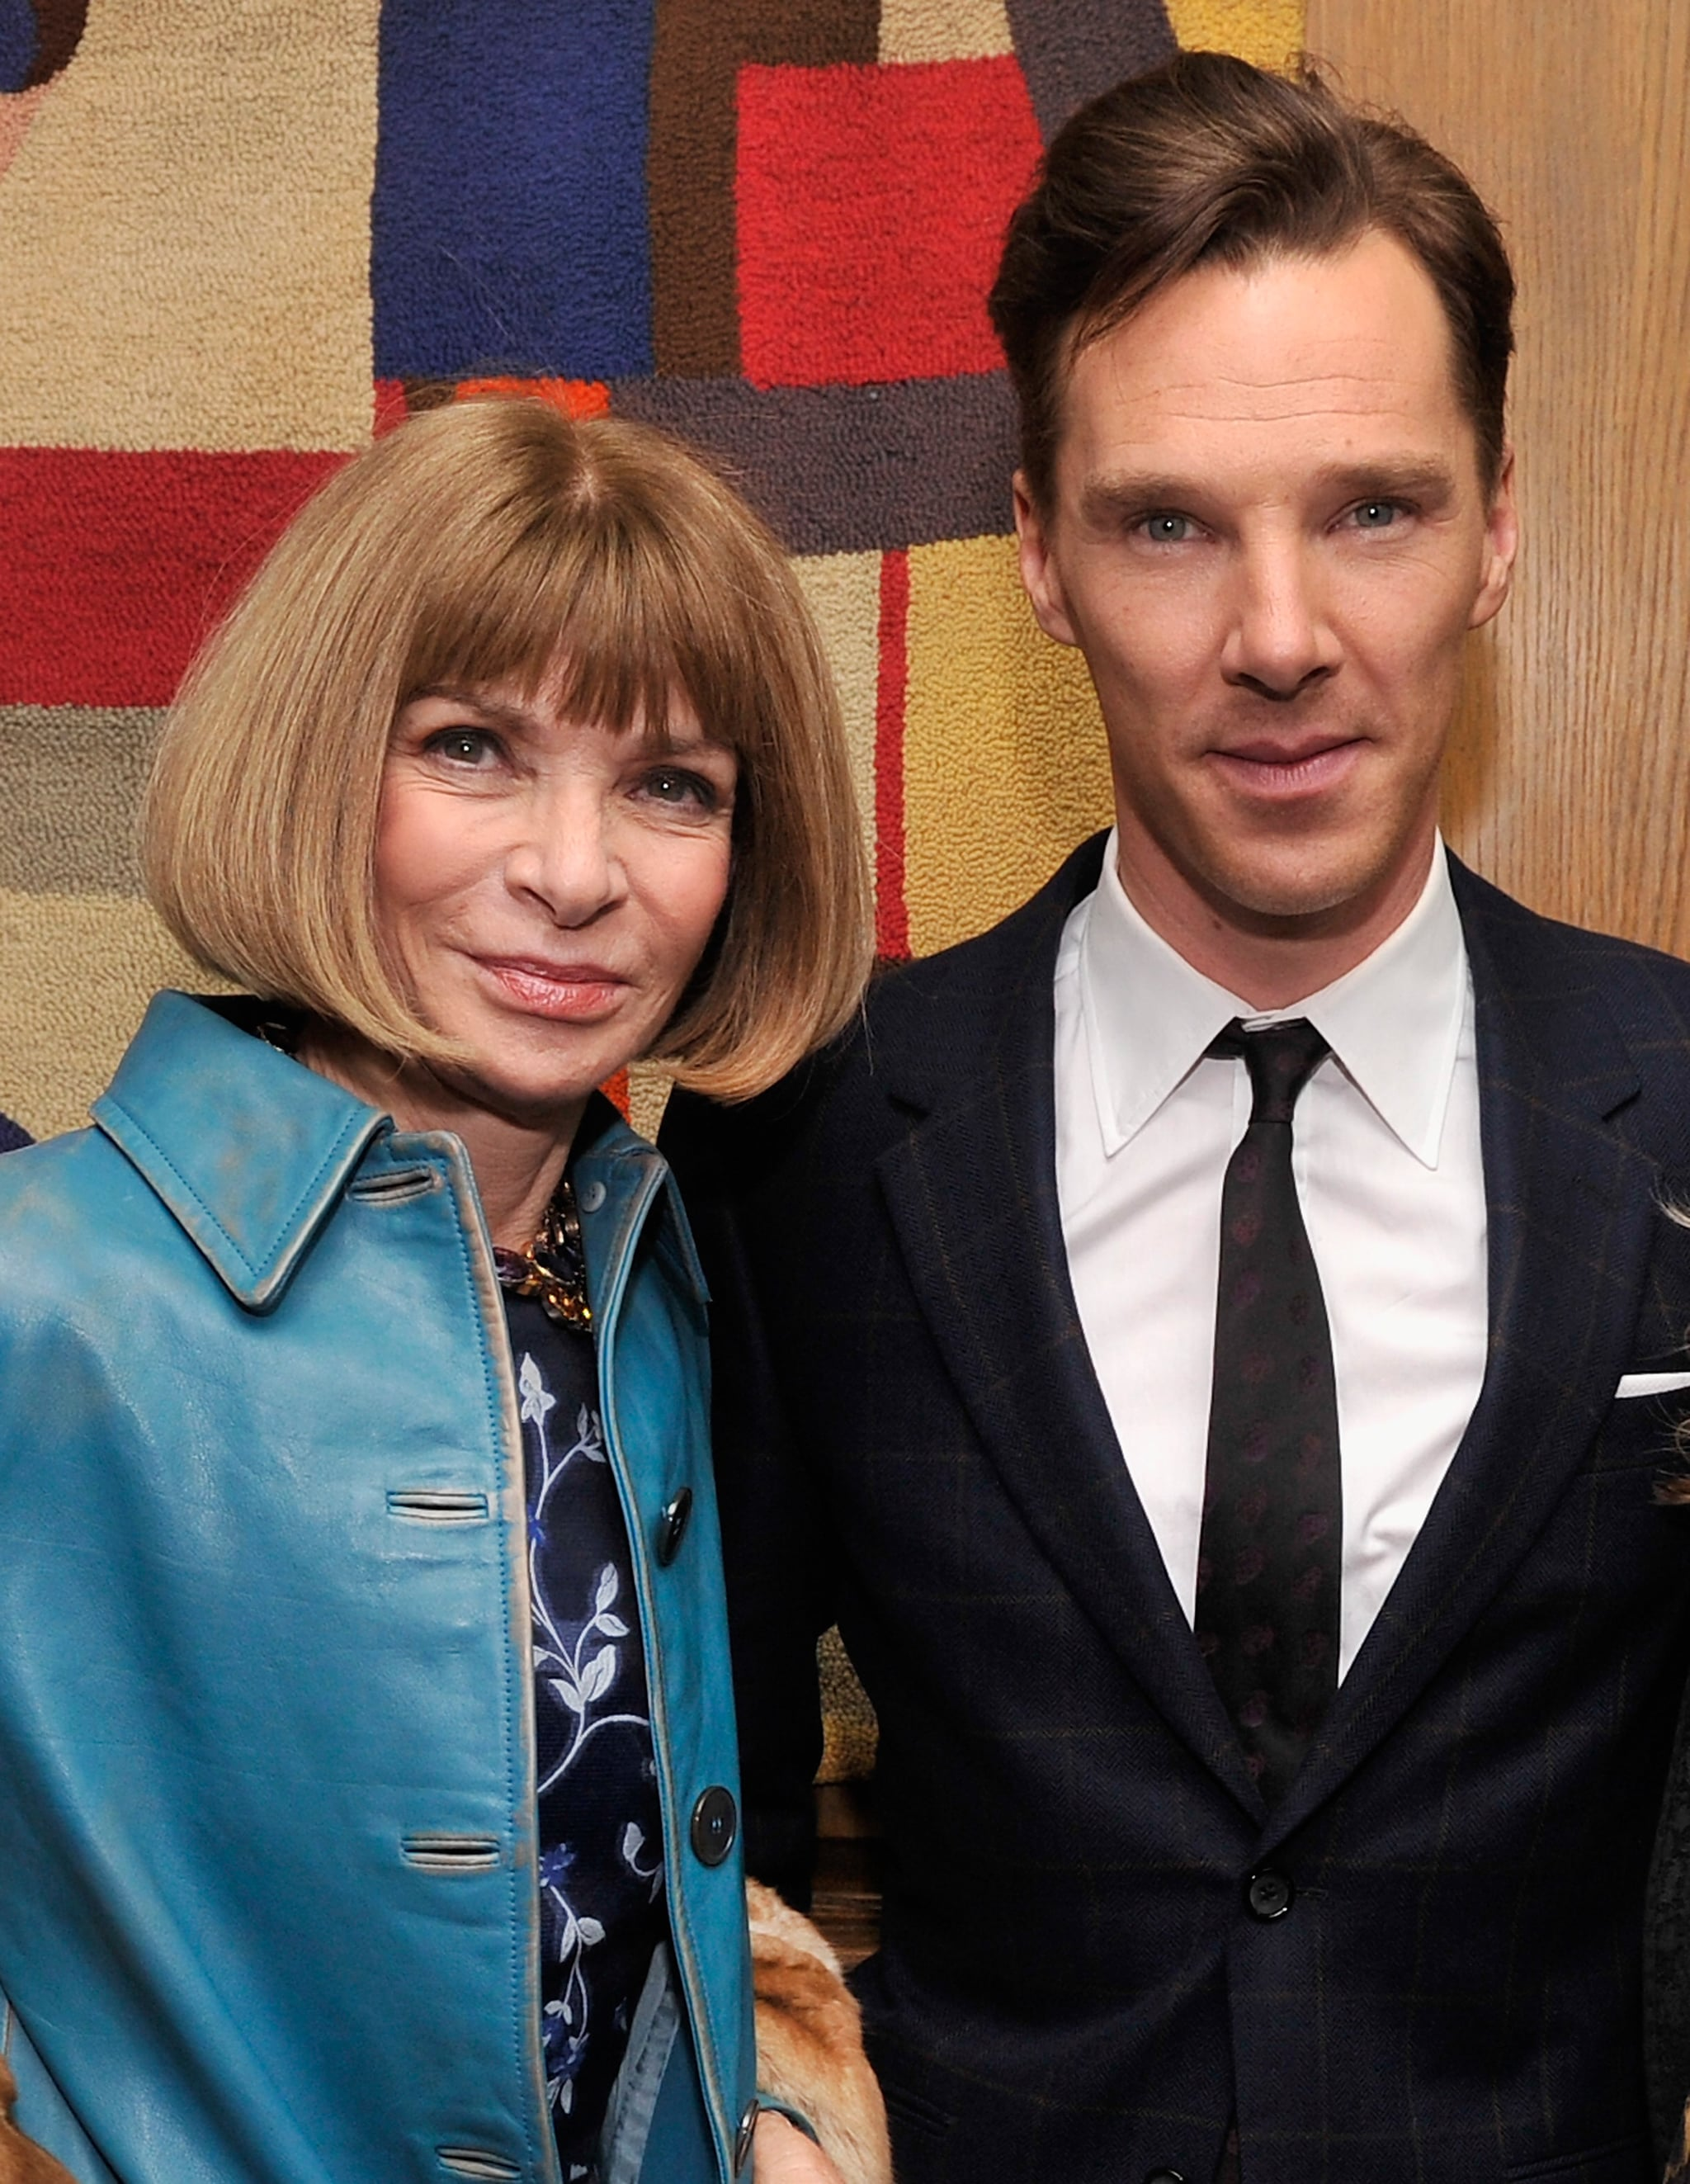 He Held His Own With Anna Wintour